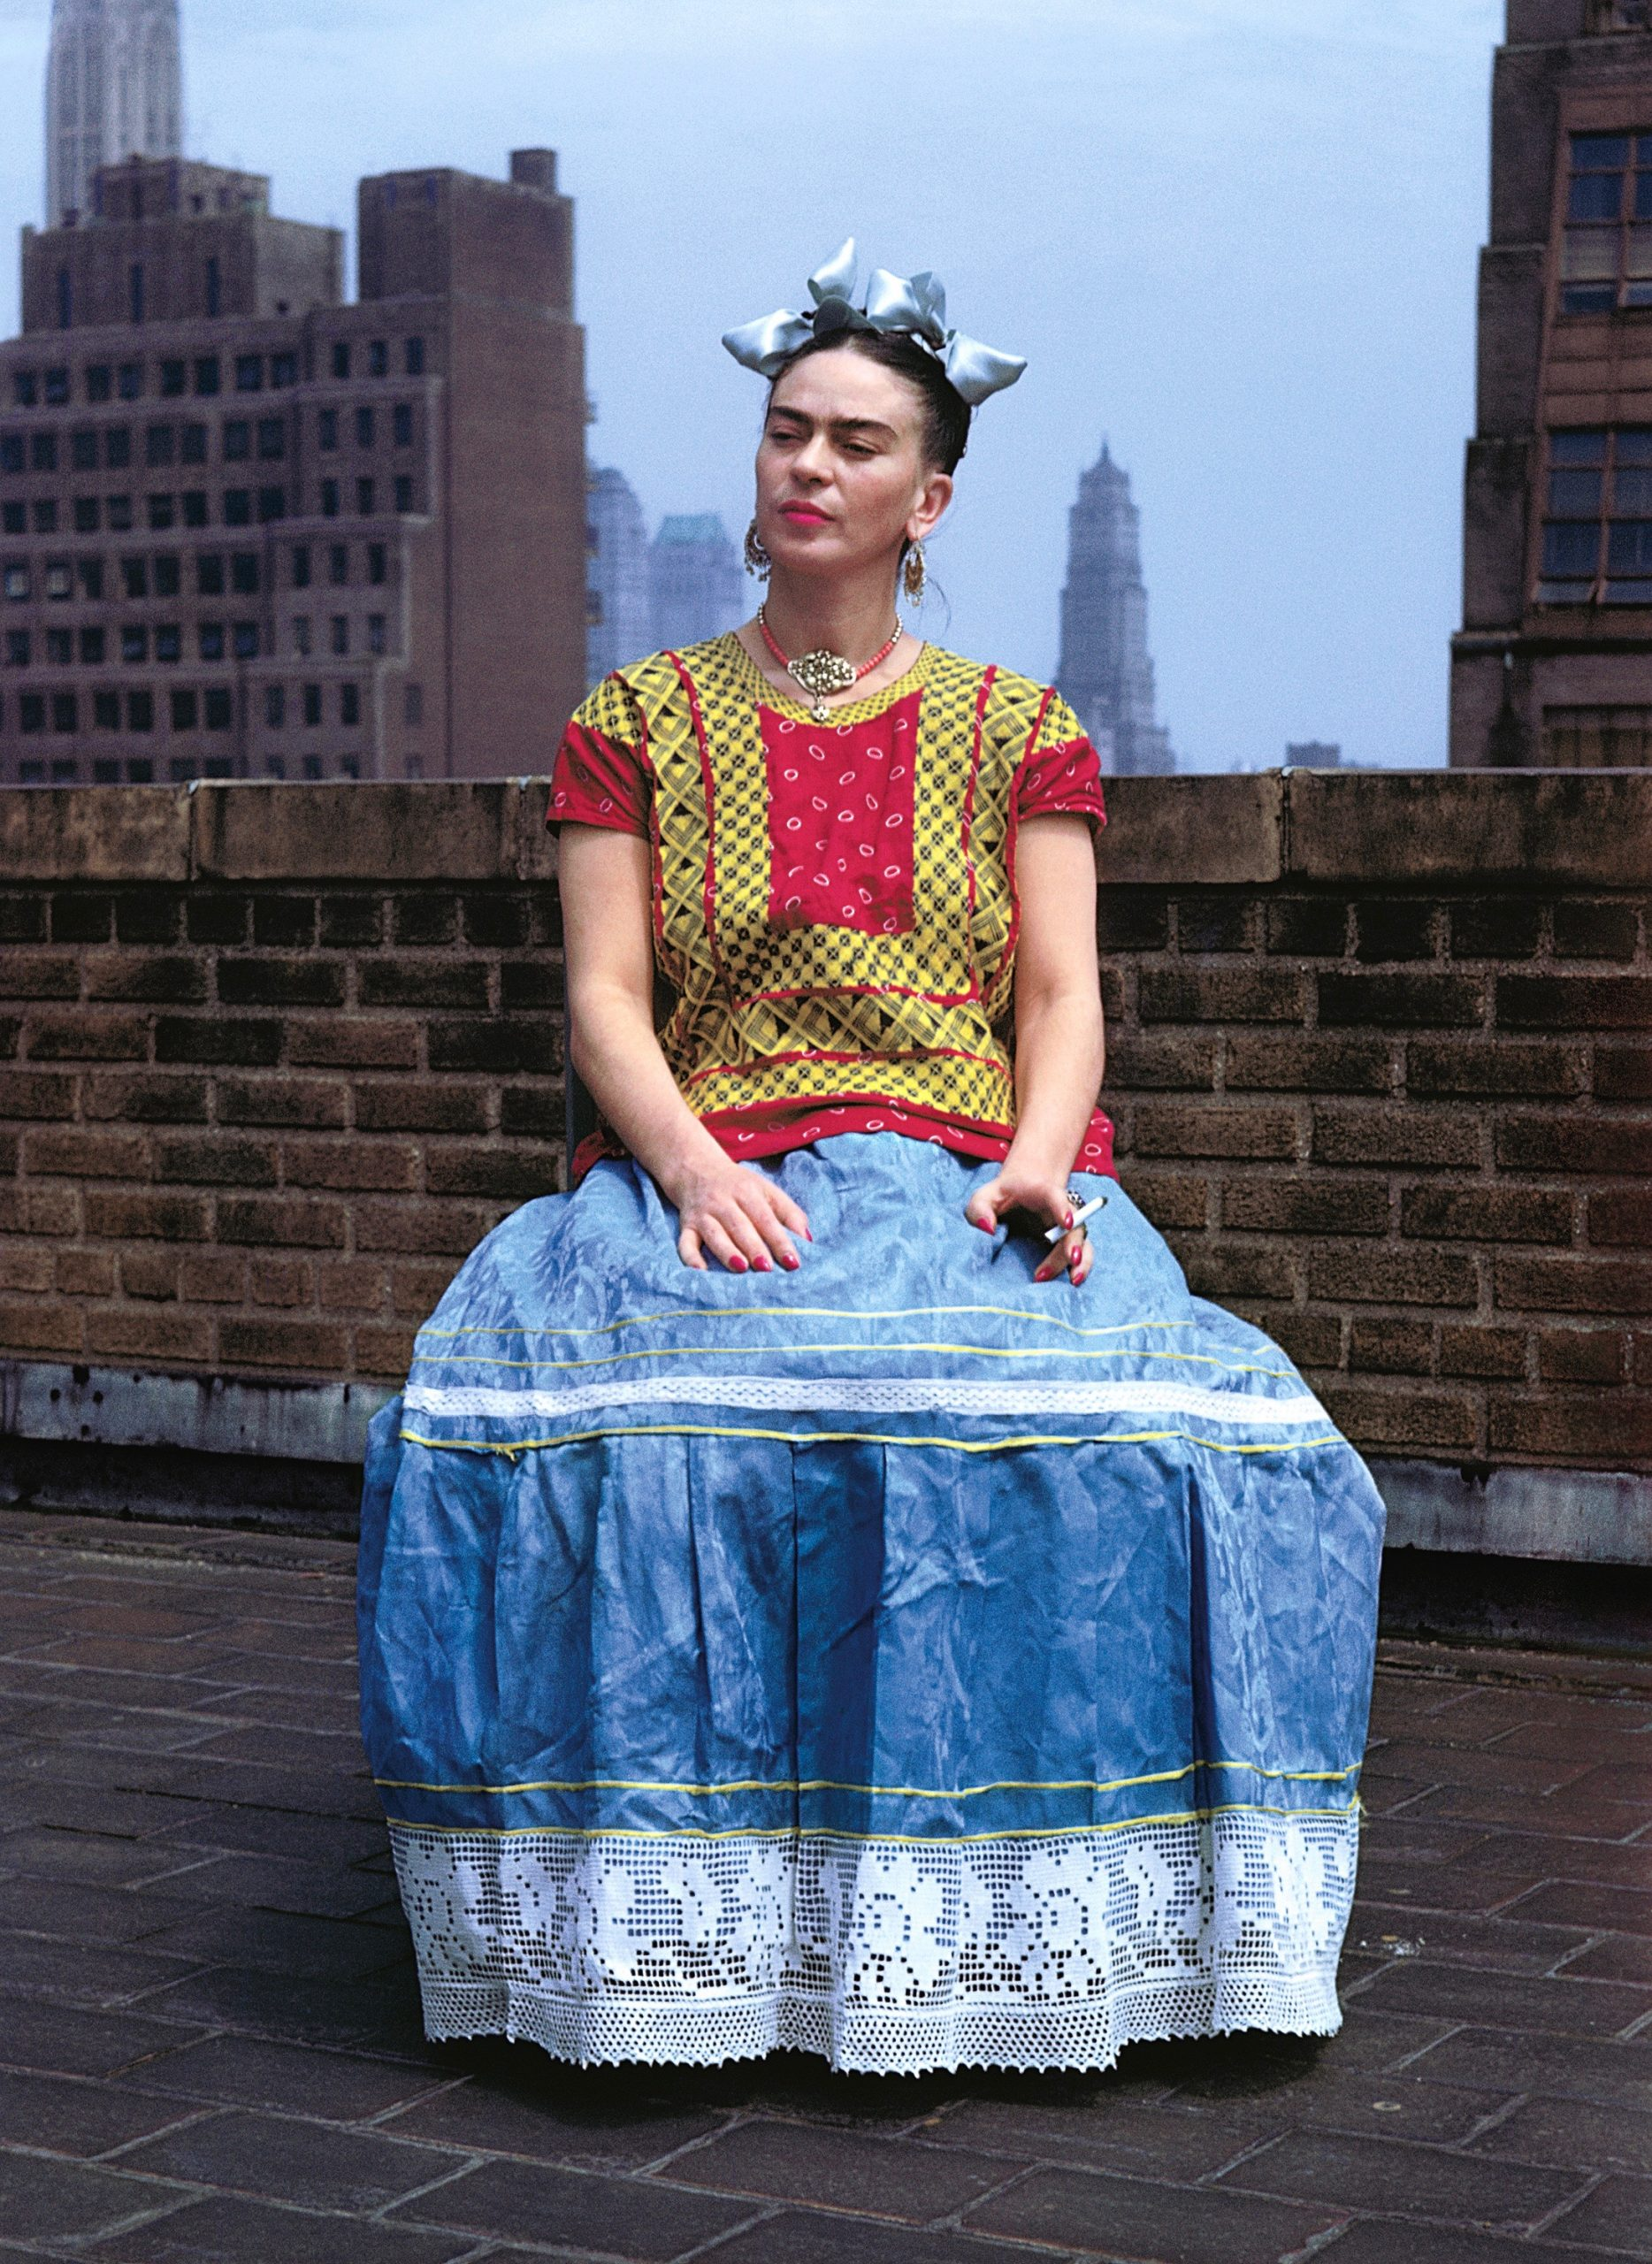 Top of the world: Although the special exhibitions at The Frick are photo shows, with none of Frida Kahlo's art on display, this 1946 picture is very much in the style of her painted self-portraits. The photographer was Nickolas Muray. (Image © Nickolas Muray Photo Archives)